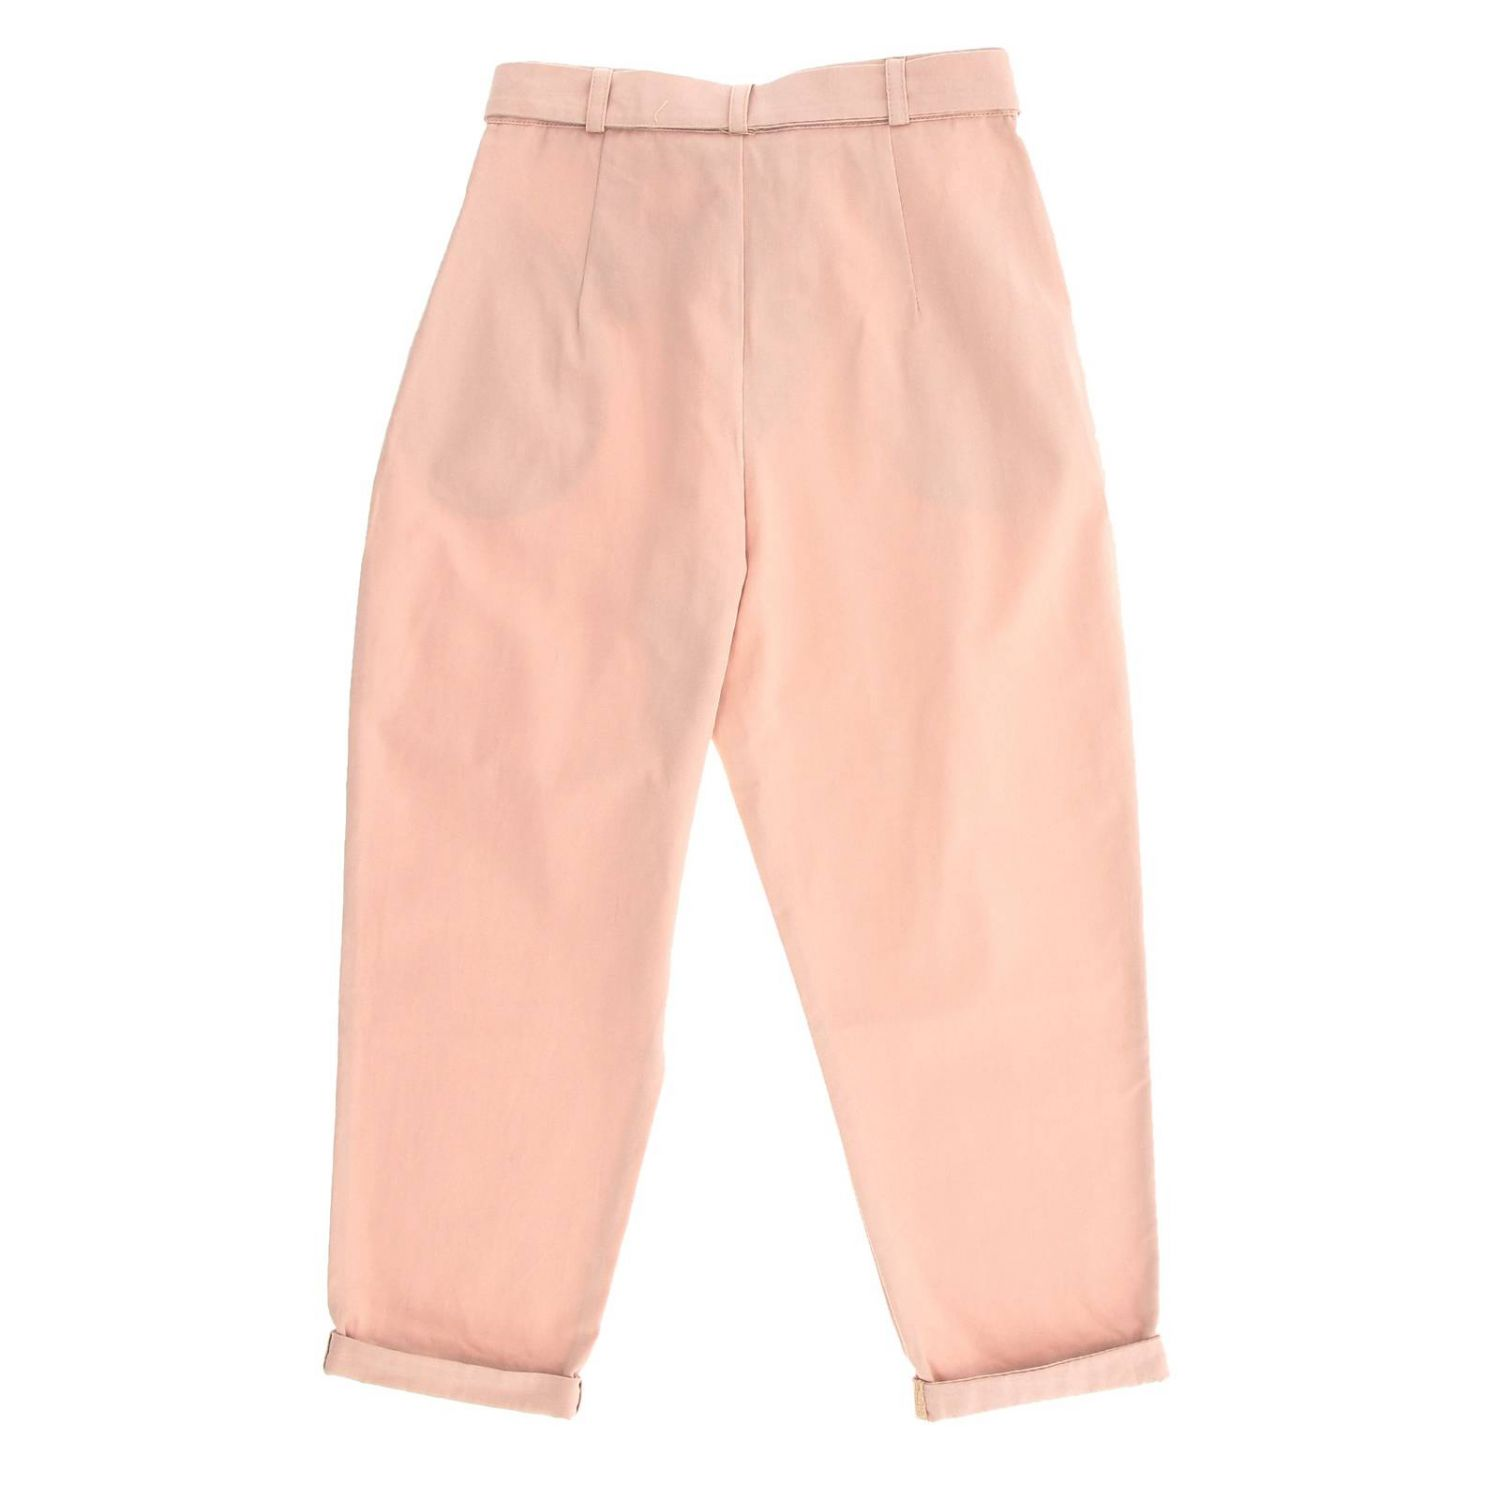 Trousers Caffe' D'orzo: Trousers kids Caffe' D'orzo pink 2